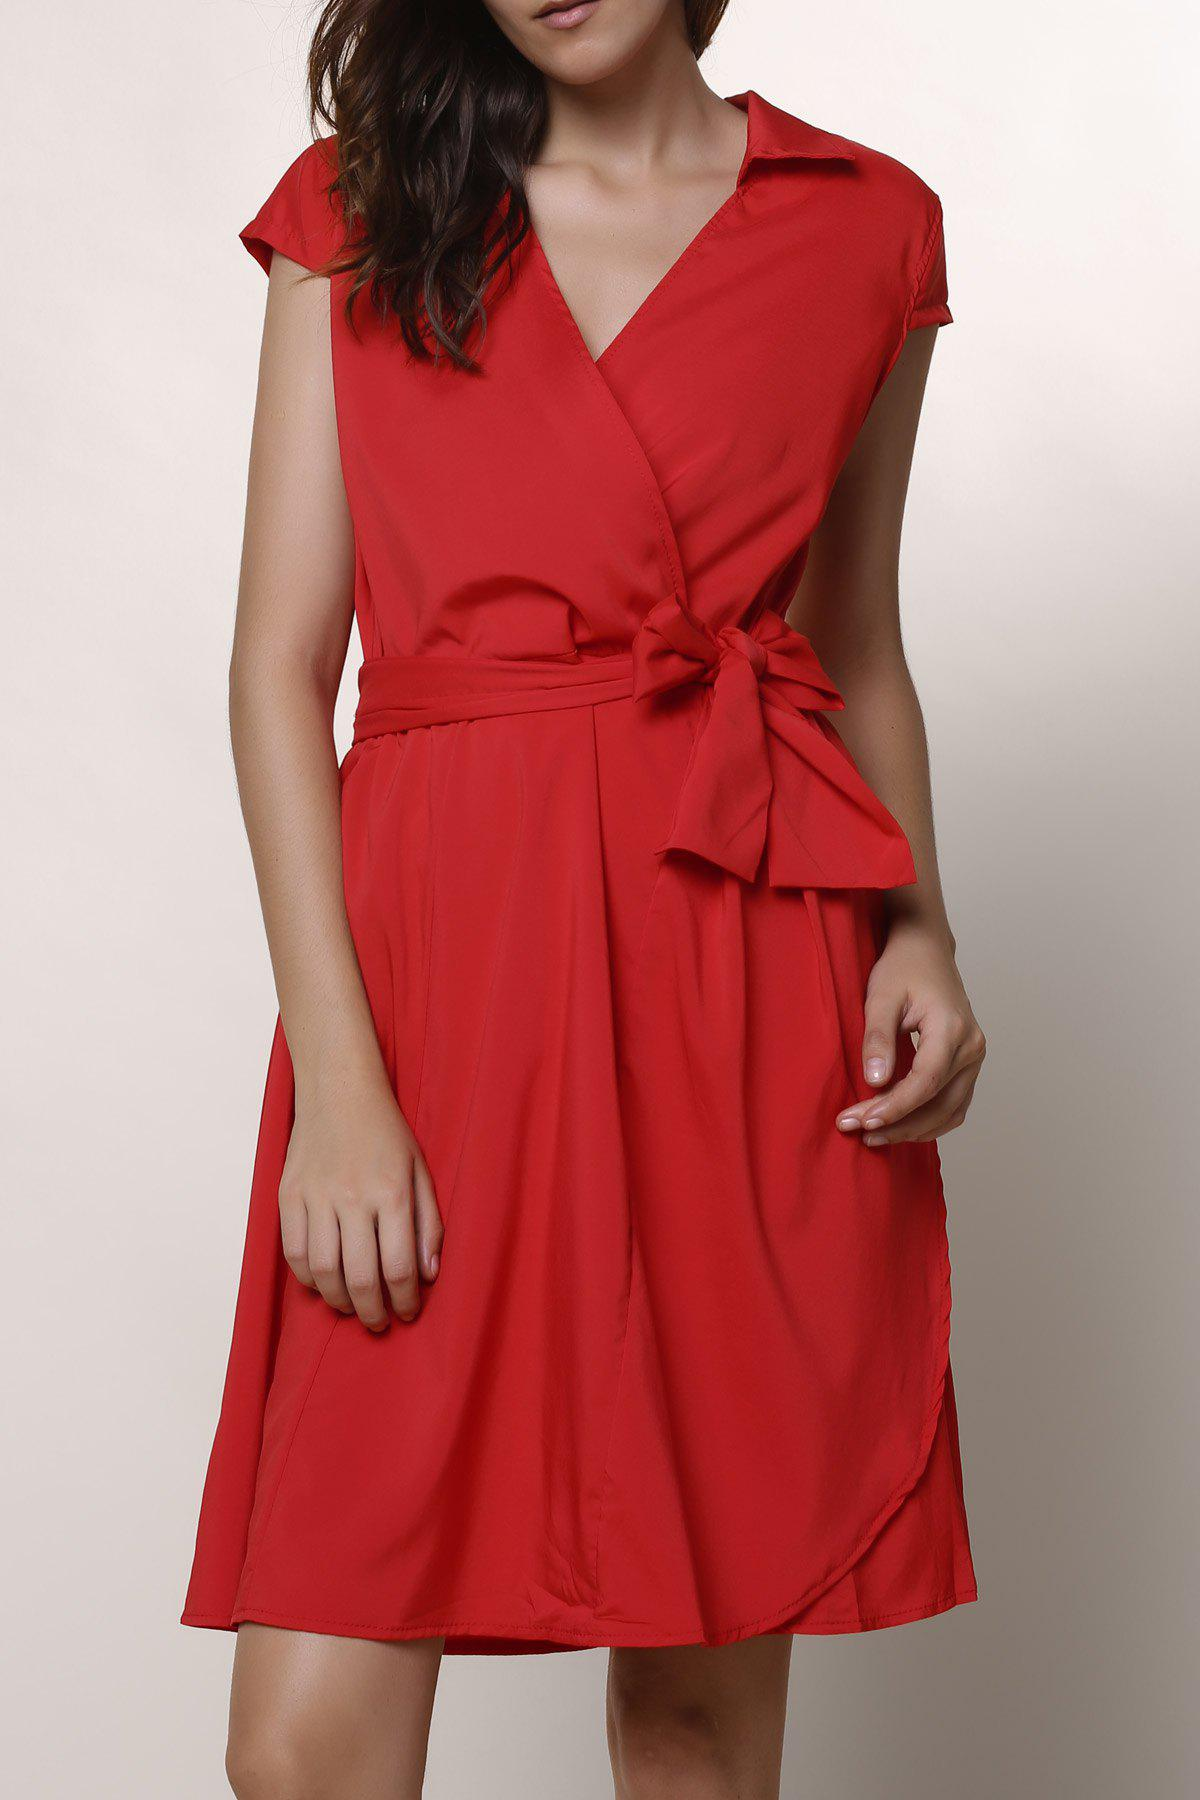 Trendy Turndown Collar Crossover Midi A Line Dress